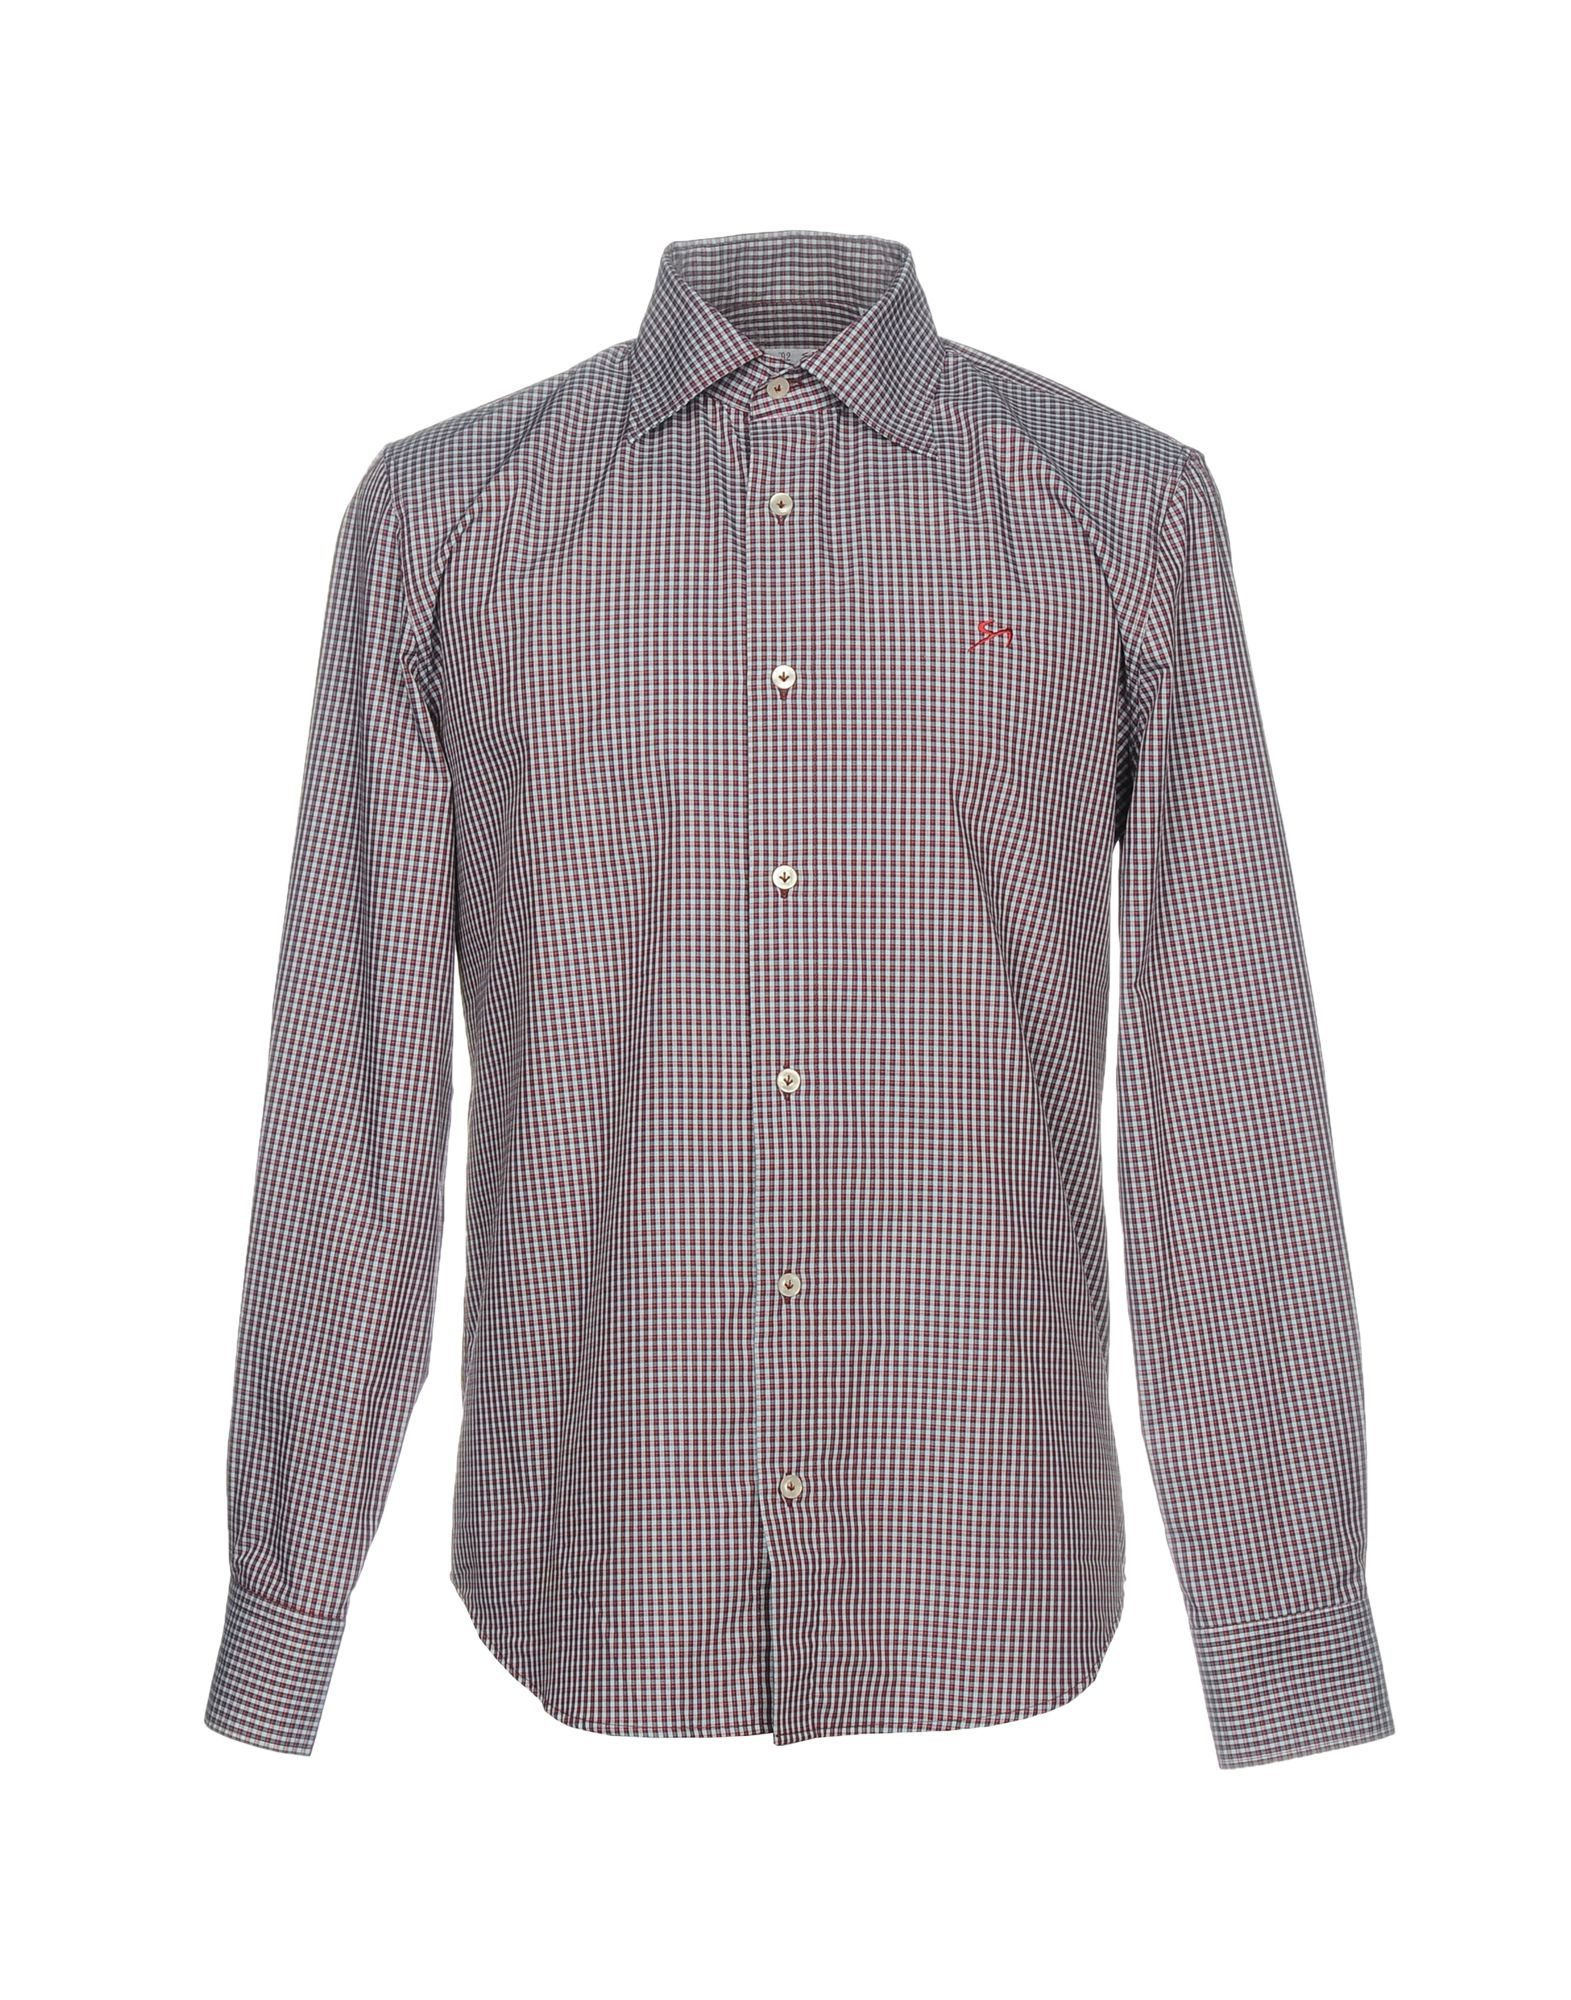 9.2 BY CARLO CHIONNA | 9.2 BY CARLO CHIONNA Shirts 38734574 | Goxip